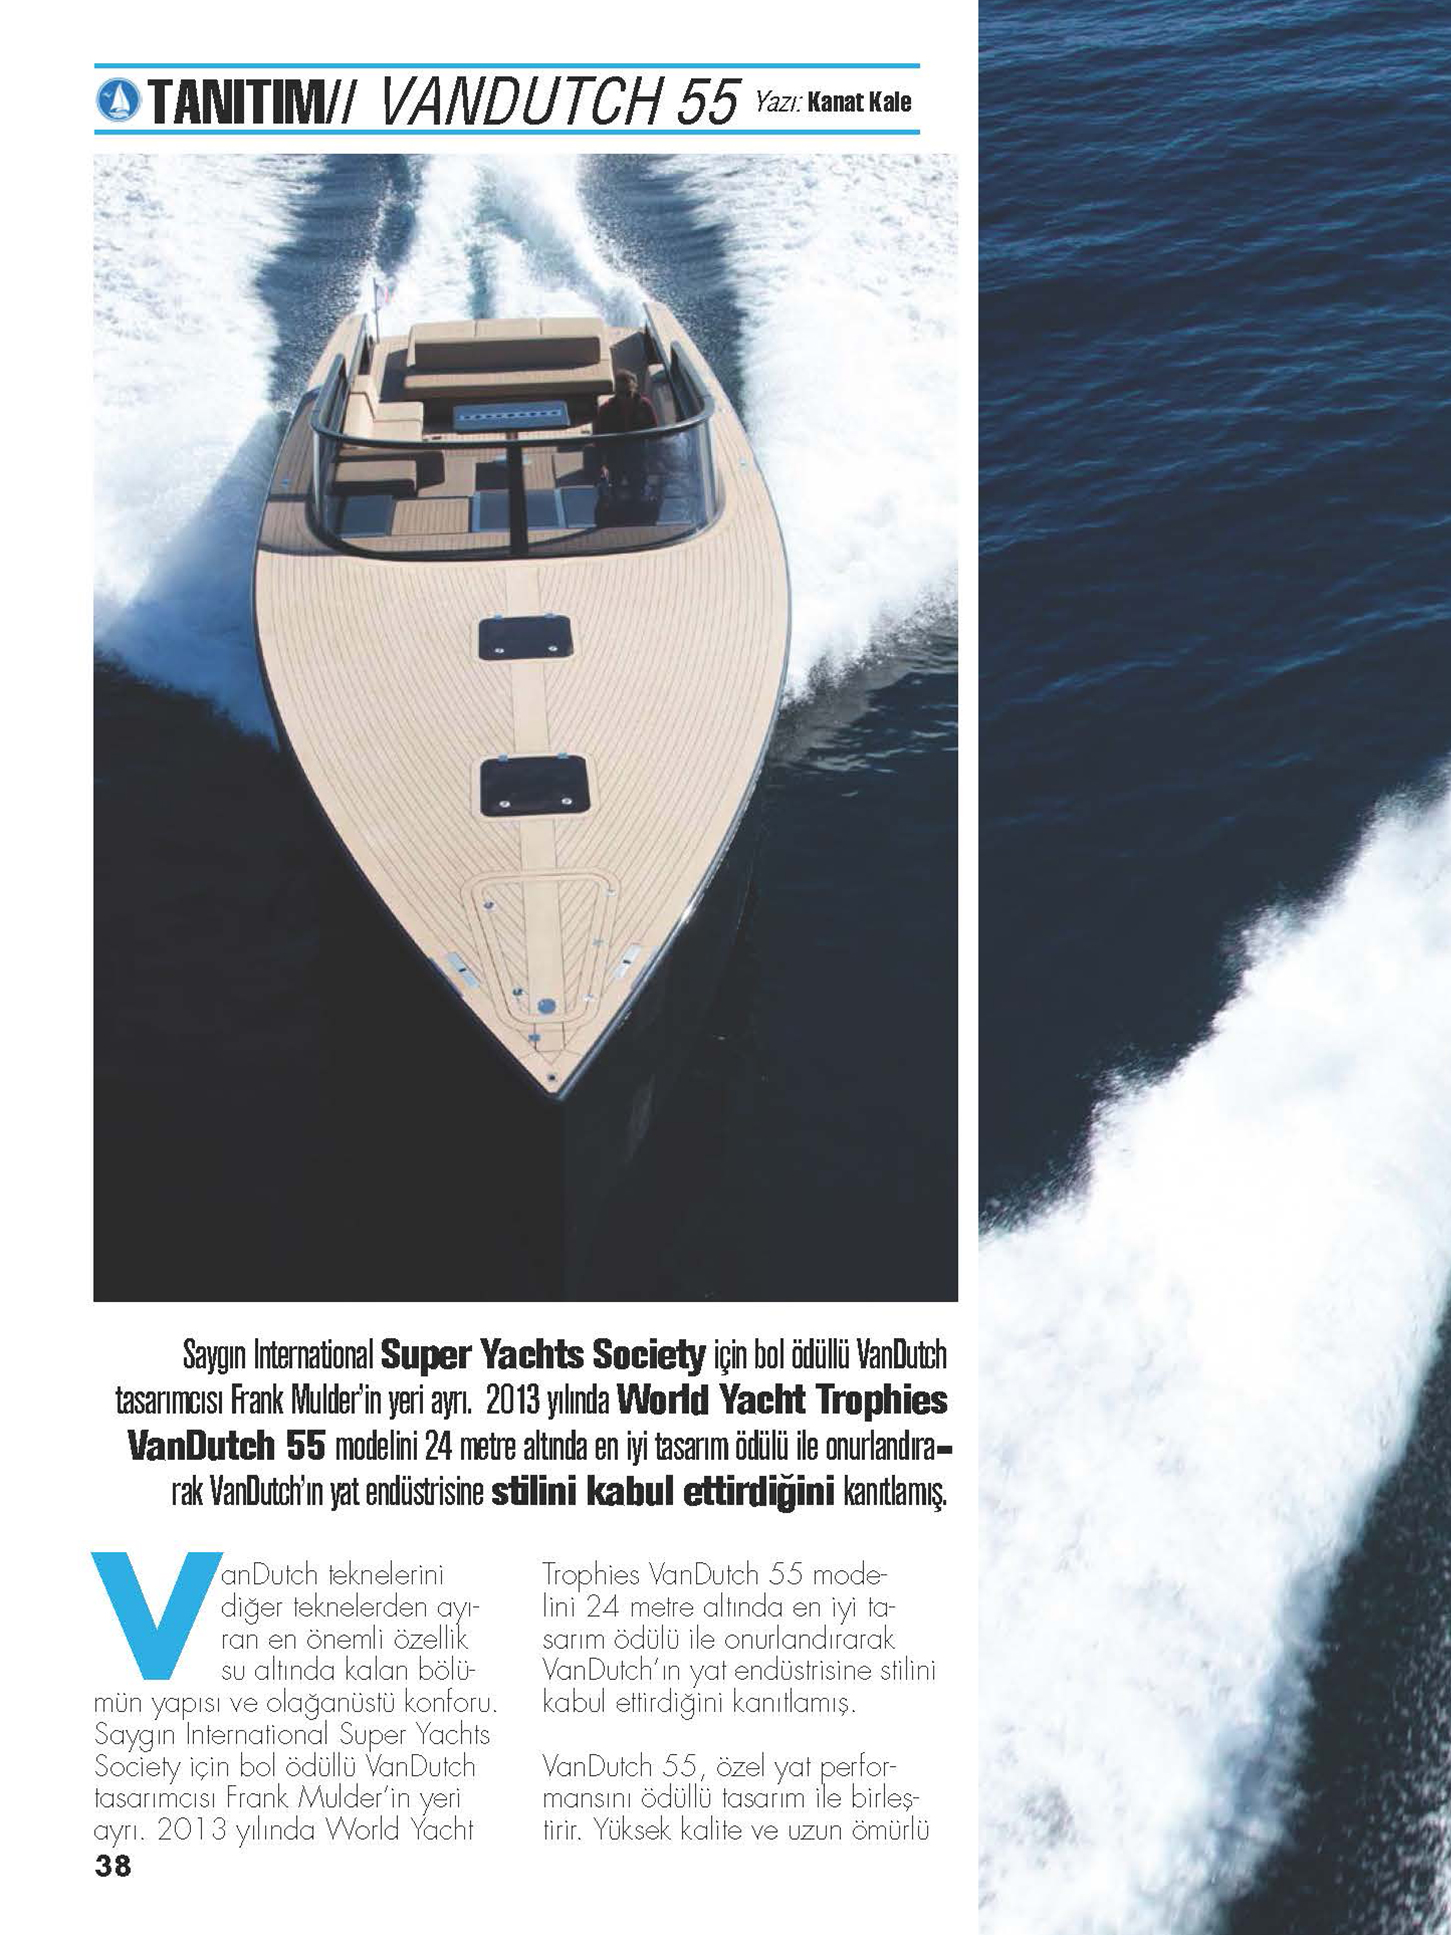 boat-and-yacht-03-225x300